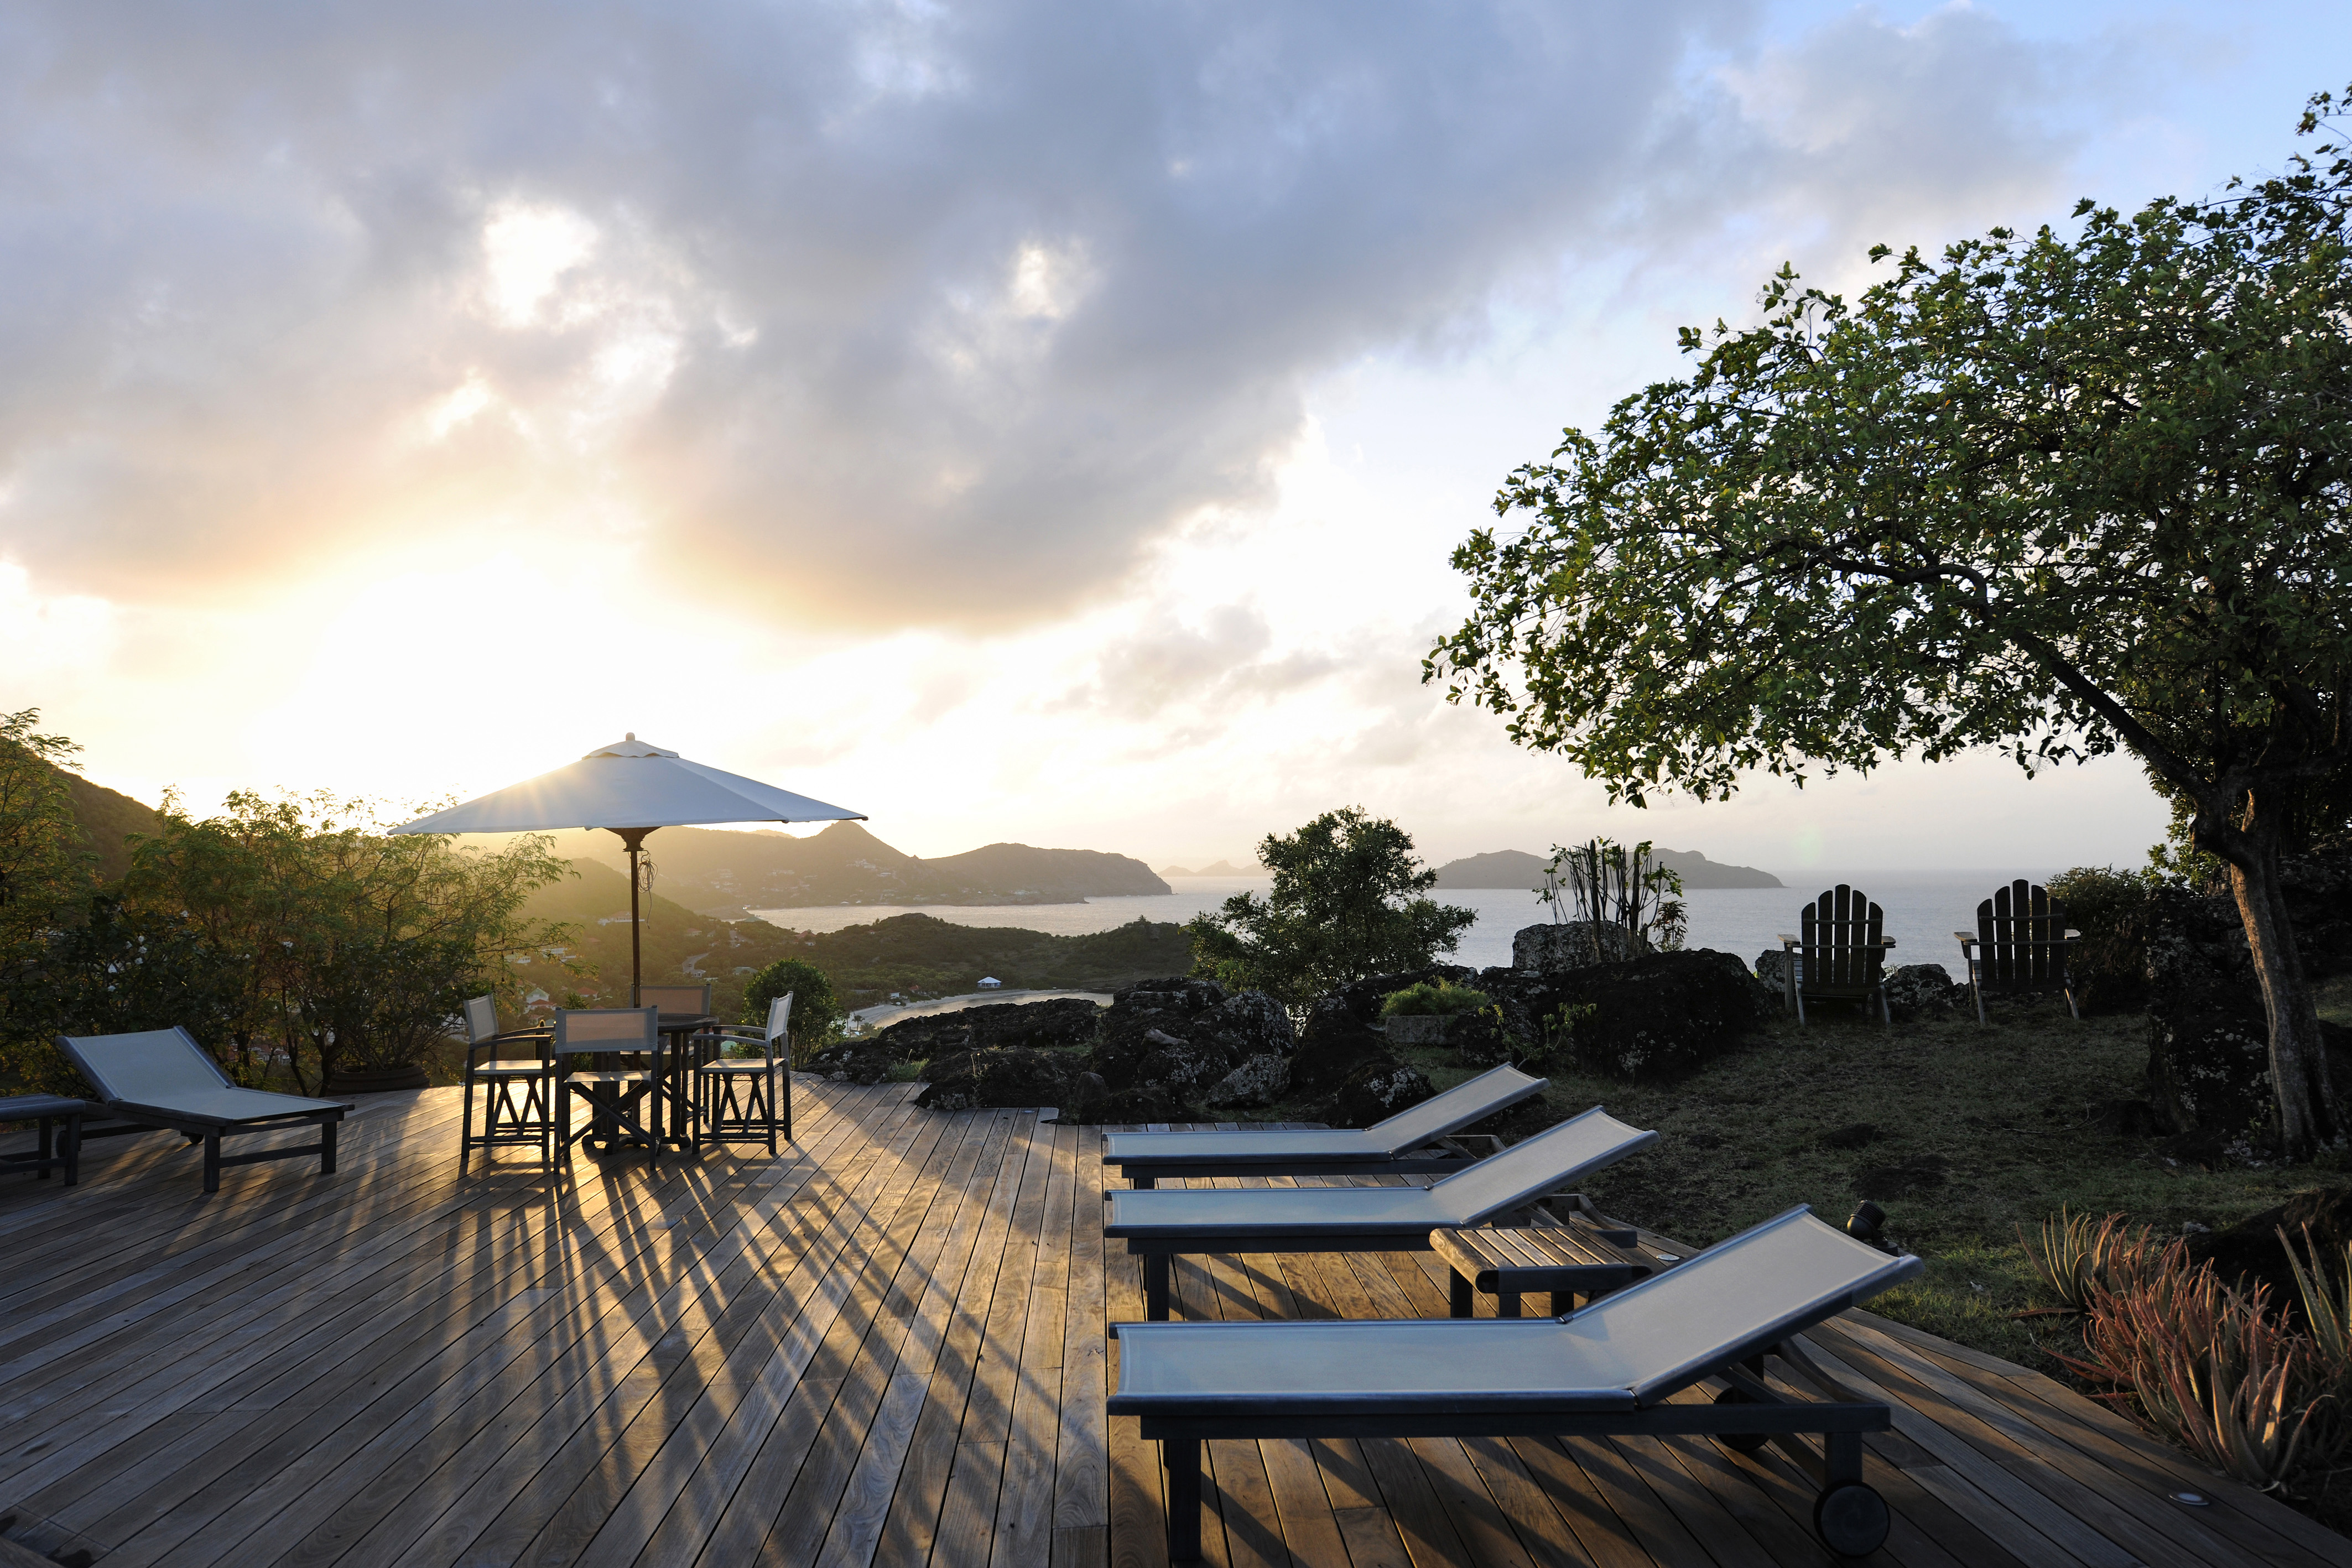 Single Family Home for Sale at Villa Bel Esprit Lorient Lorient Other St. Barthelemy, Cities In St. Barthelemy 97133 St. Barthelemy